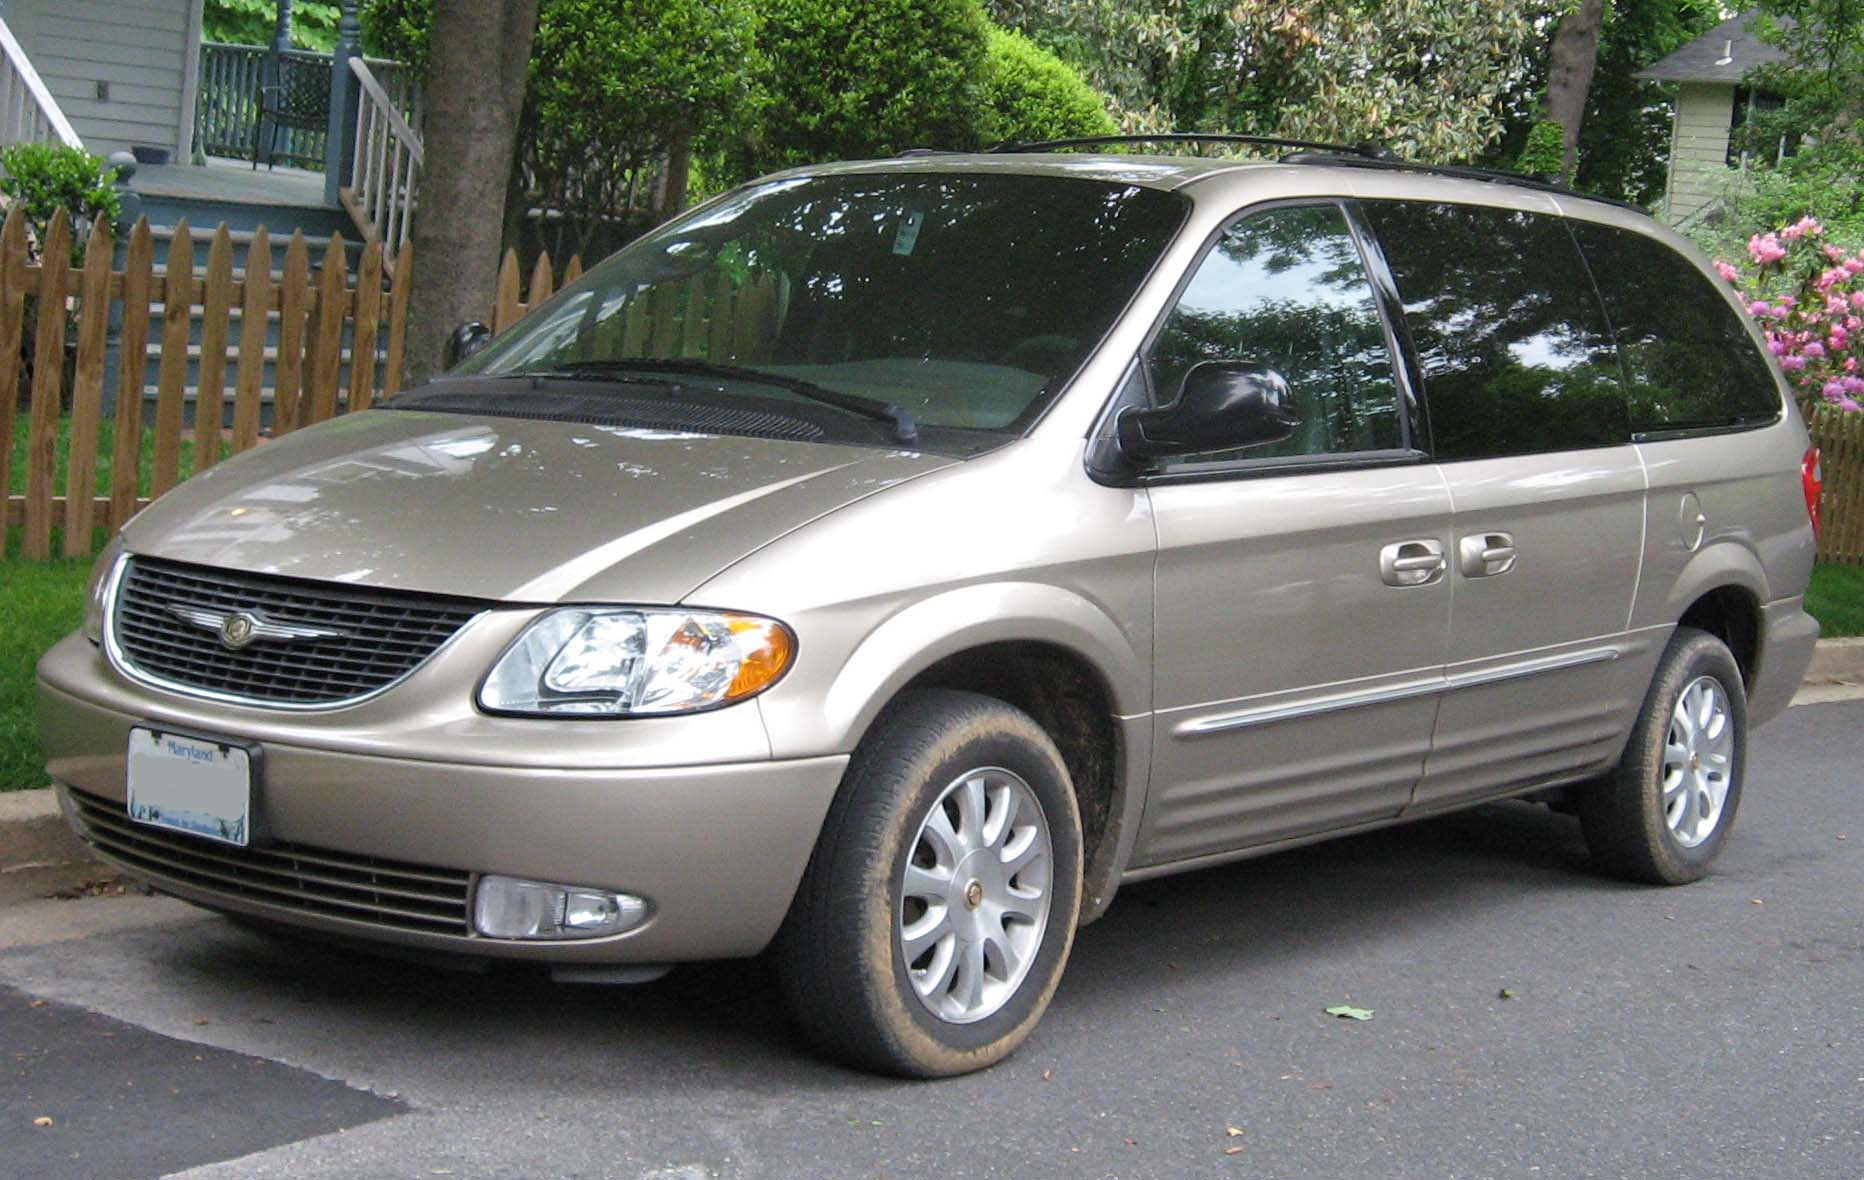 chrysler town & country #6